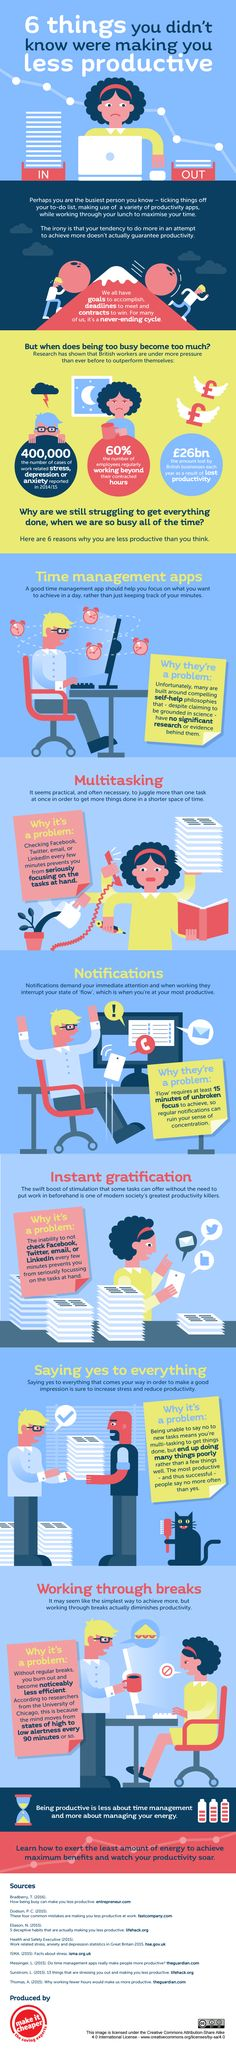 6 things you didn't know were making you less productive